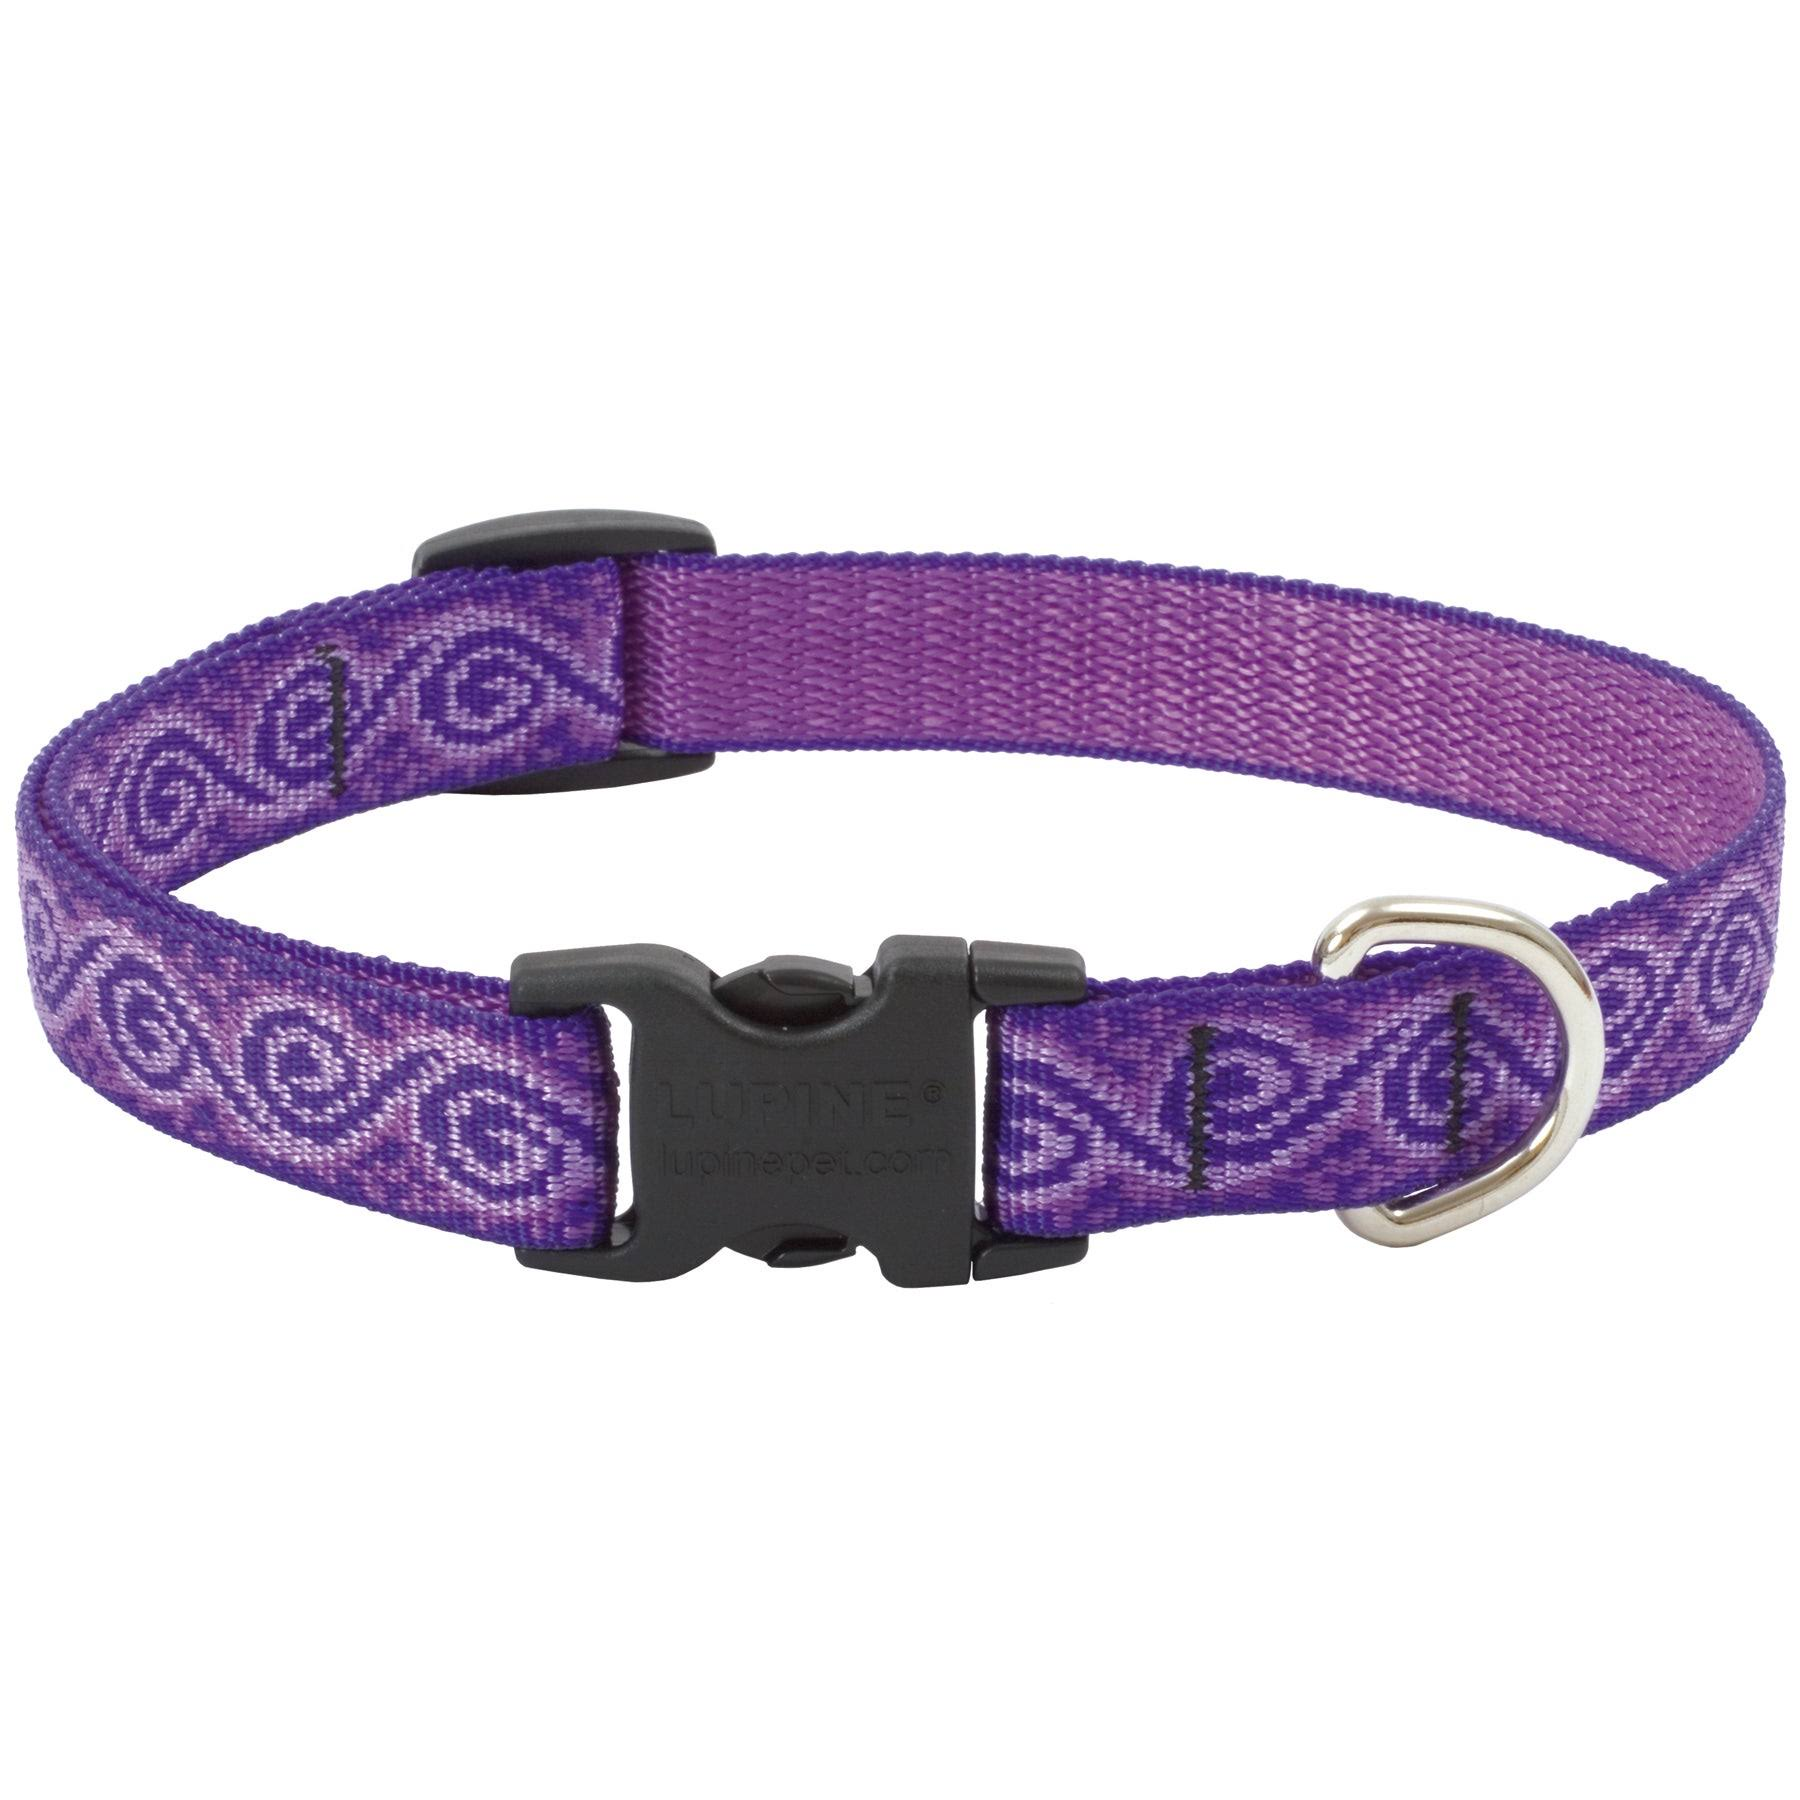 Lupine Jelly Roll Patterned Adjustable Dog Collar